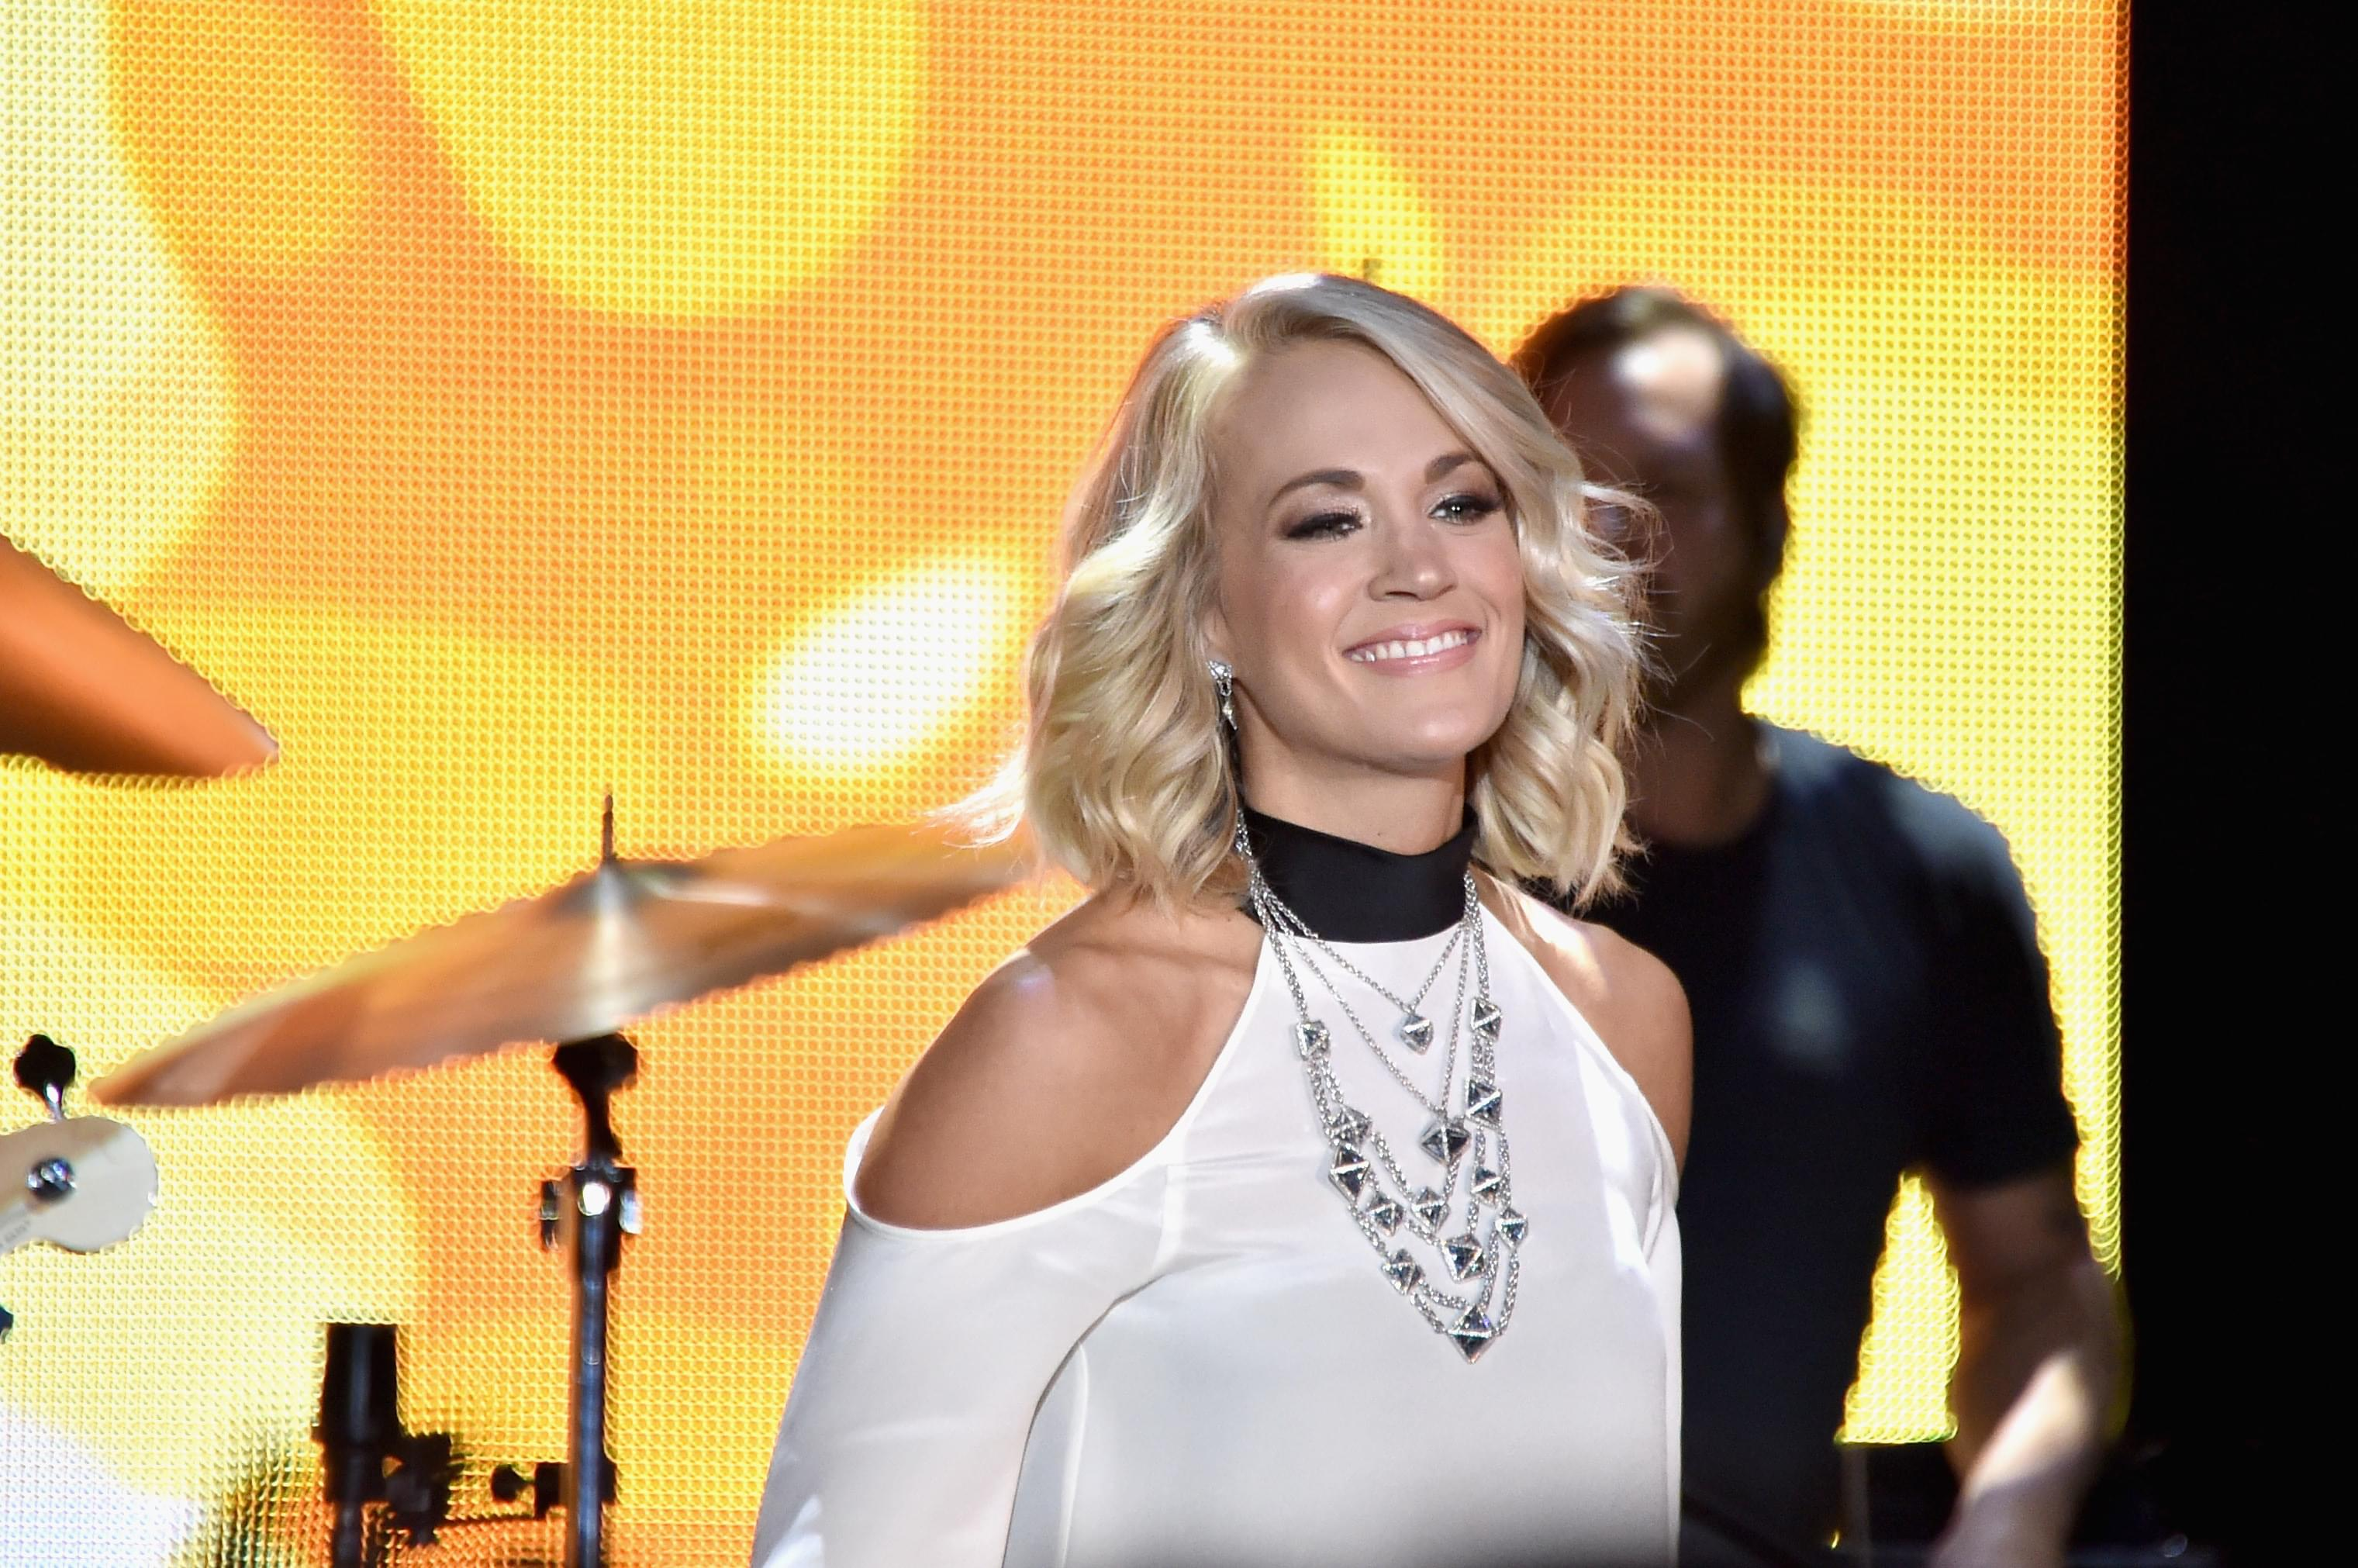 Sing With Carrie Underwood On Stage at Bankers Life Fieldhouse!